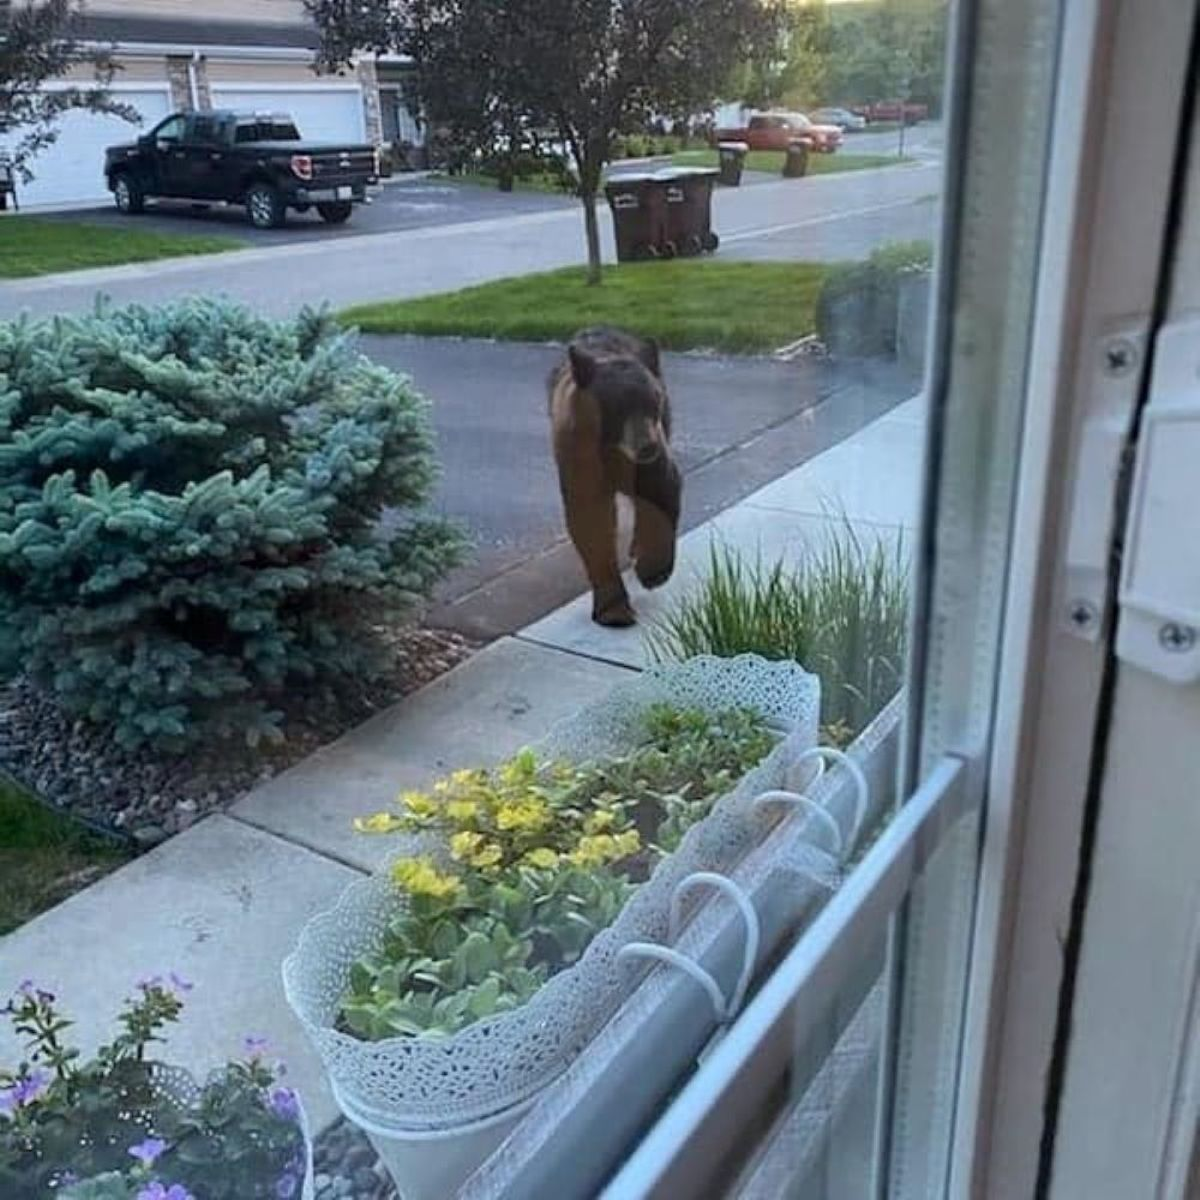 A bear spotted in Chaska's Points West neighborhood Tuesday evening.